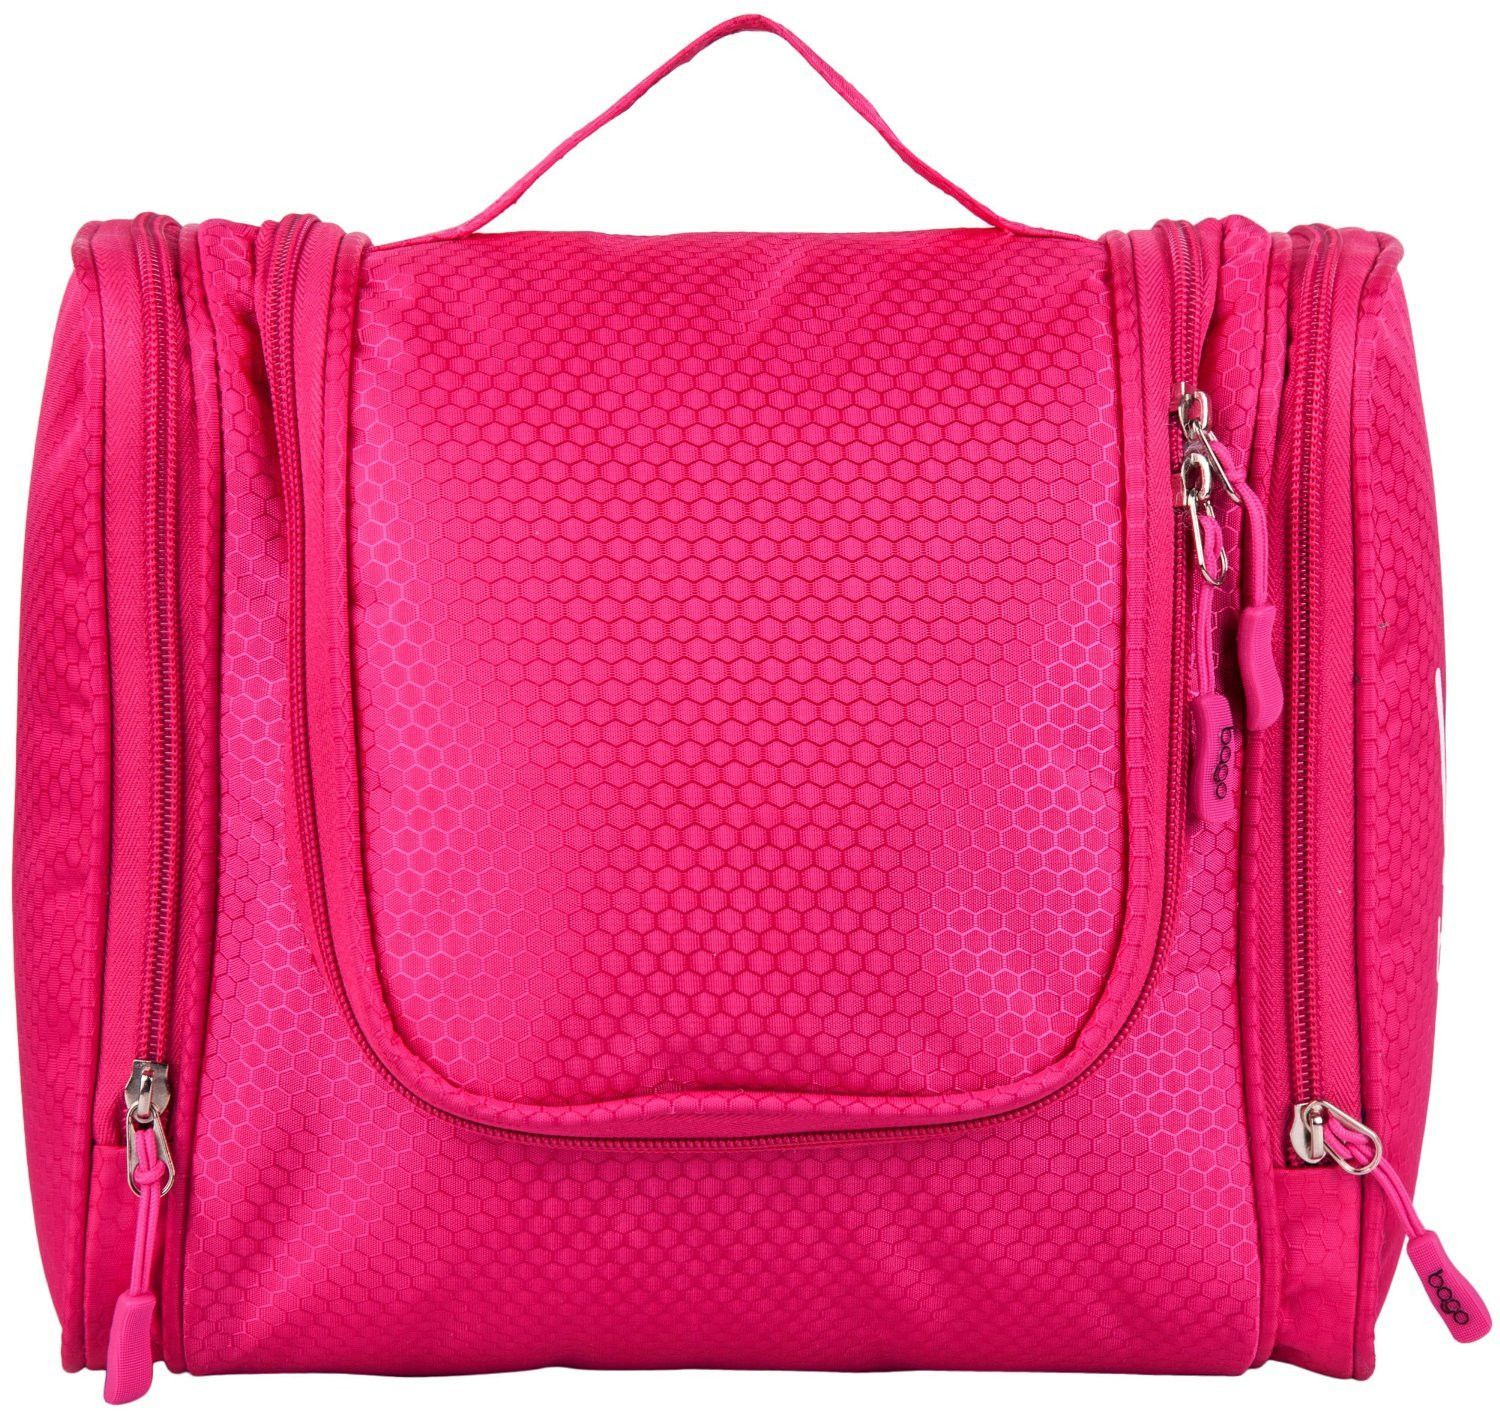 Hanging Toiletry Bag Use For Makeup Cosmetic Shaving Travel